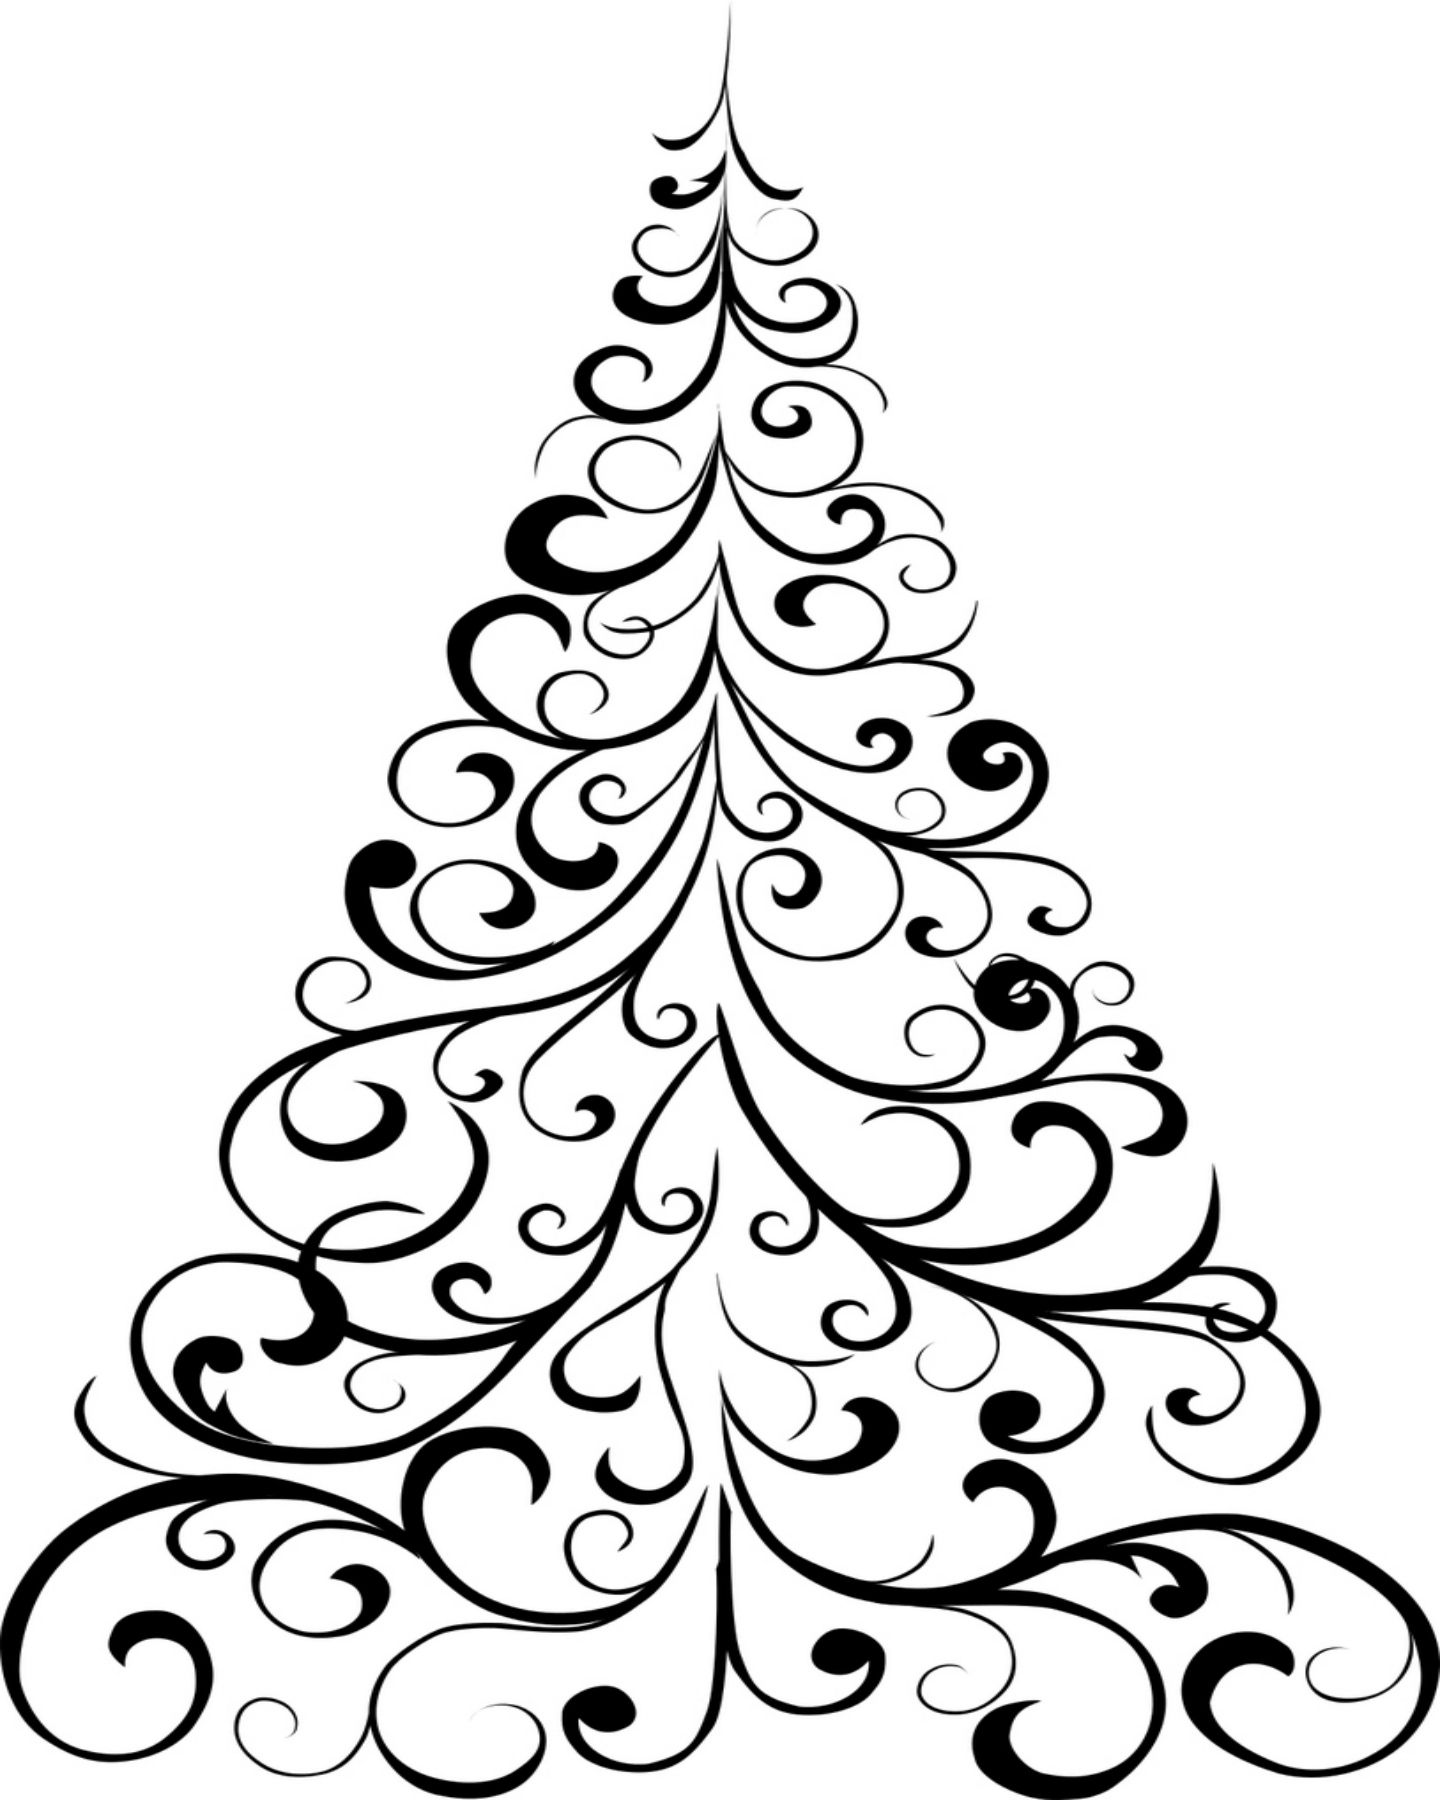 Simple Christmas Tree Coloring Pages At Getcolorings